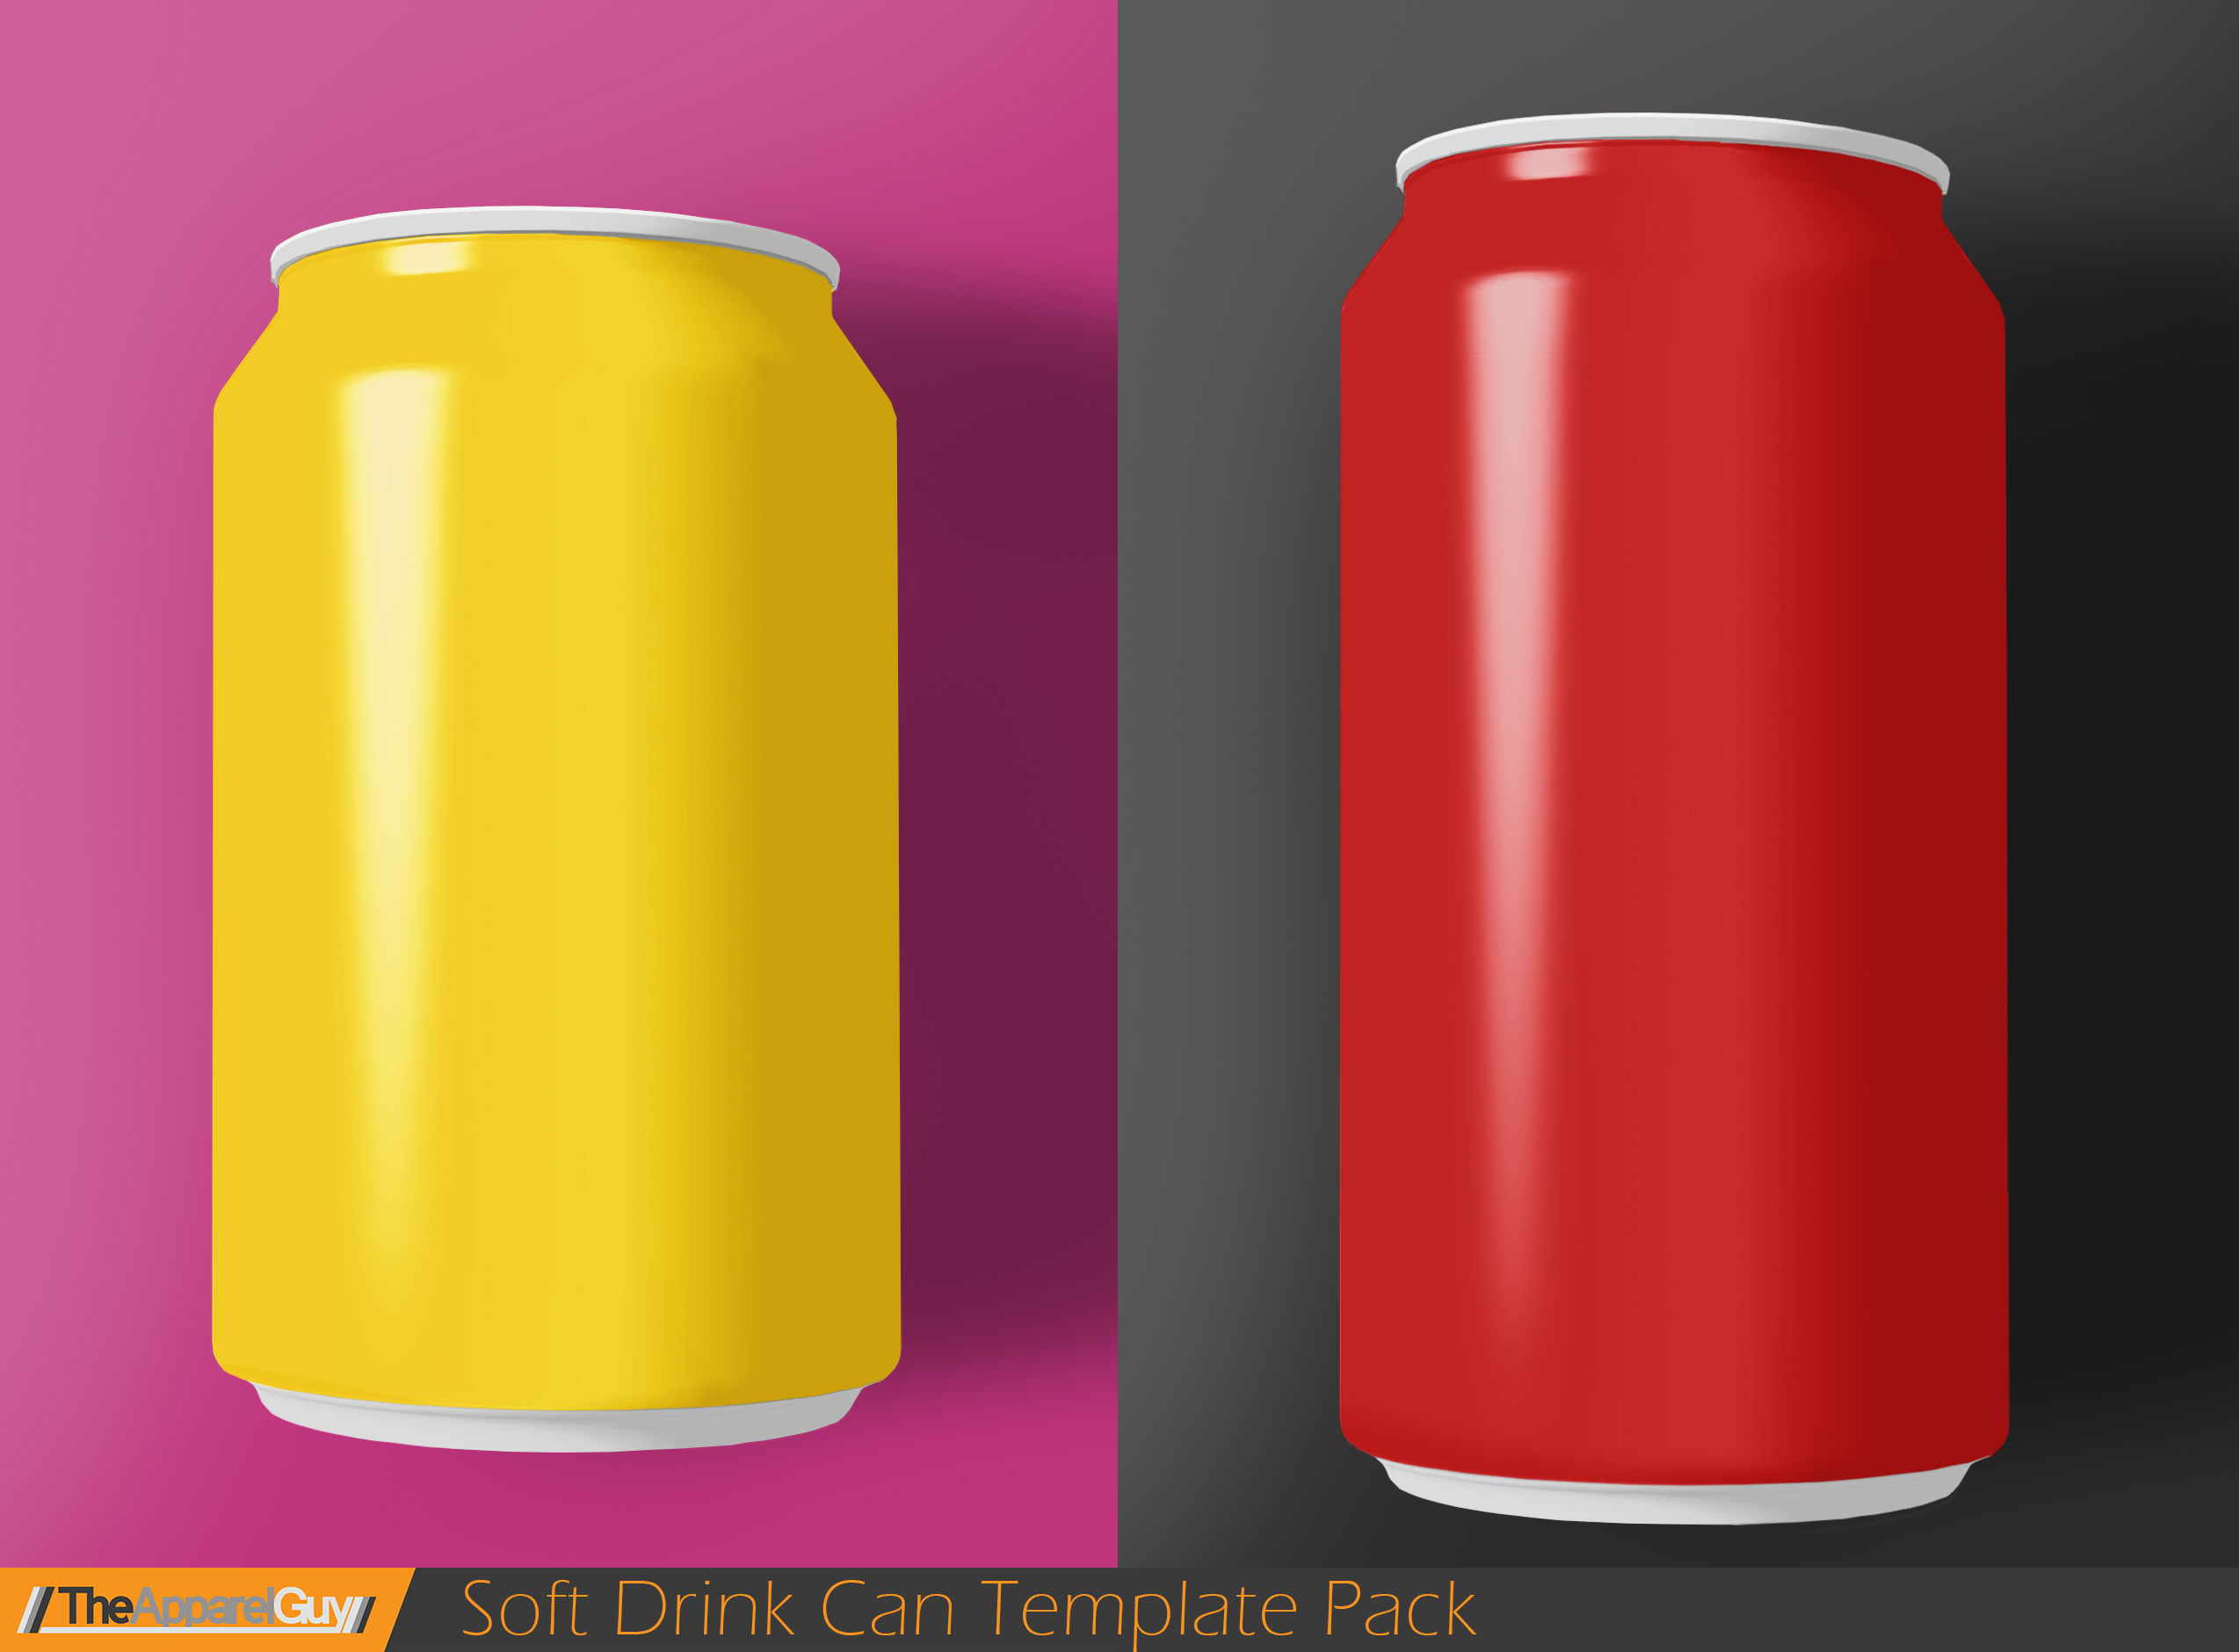 Soft Drink Can Template Pack by TheApparelGuy